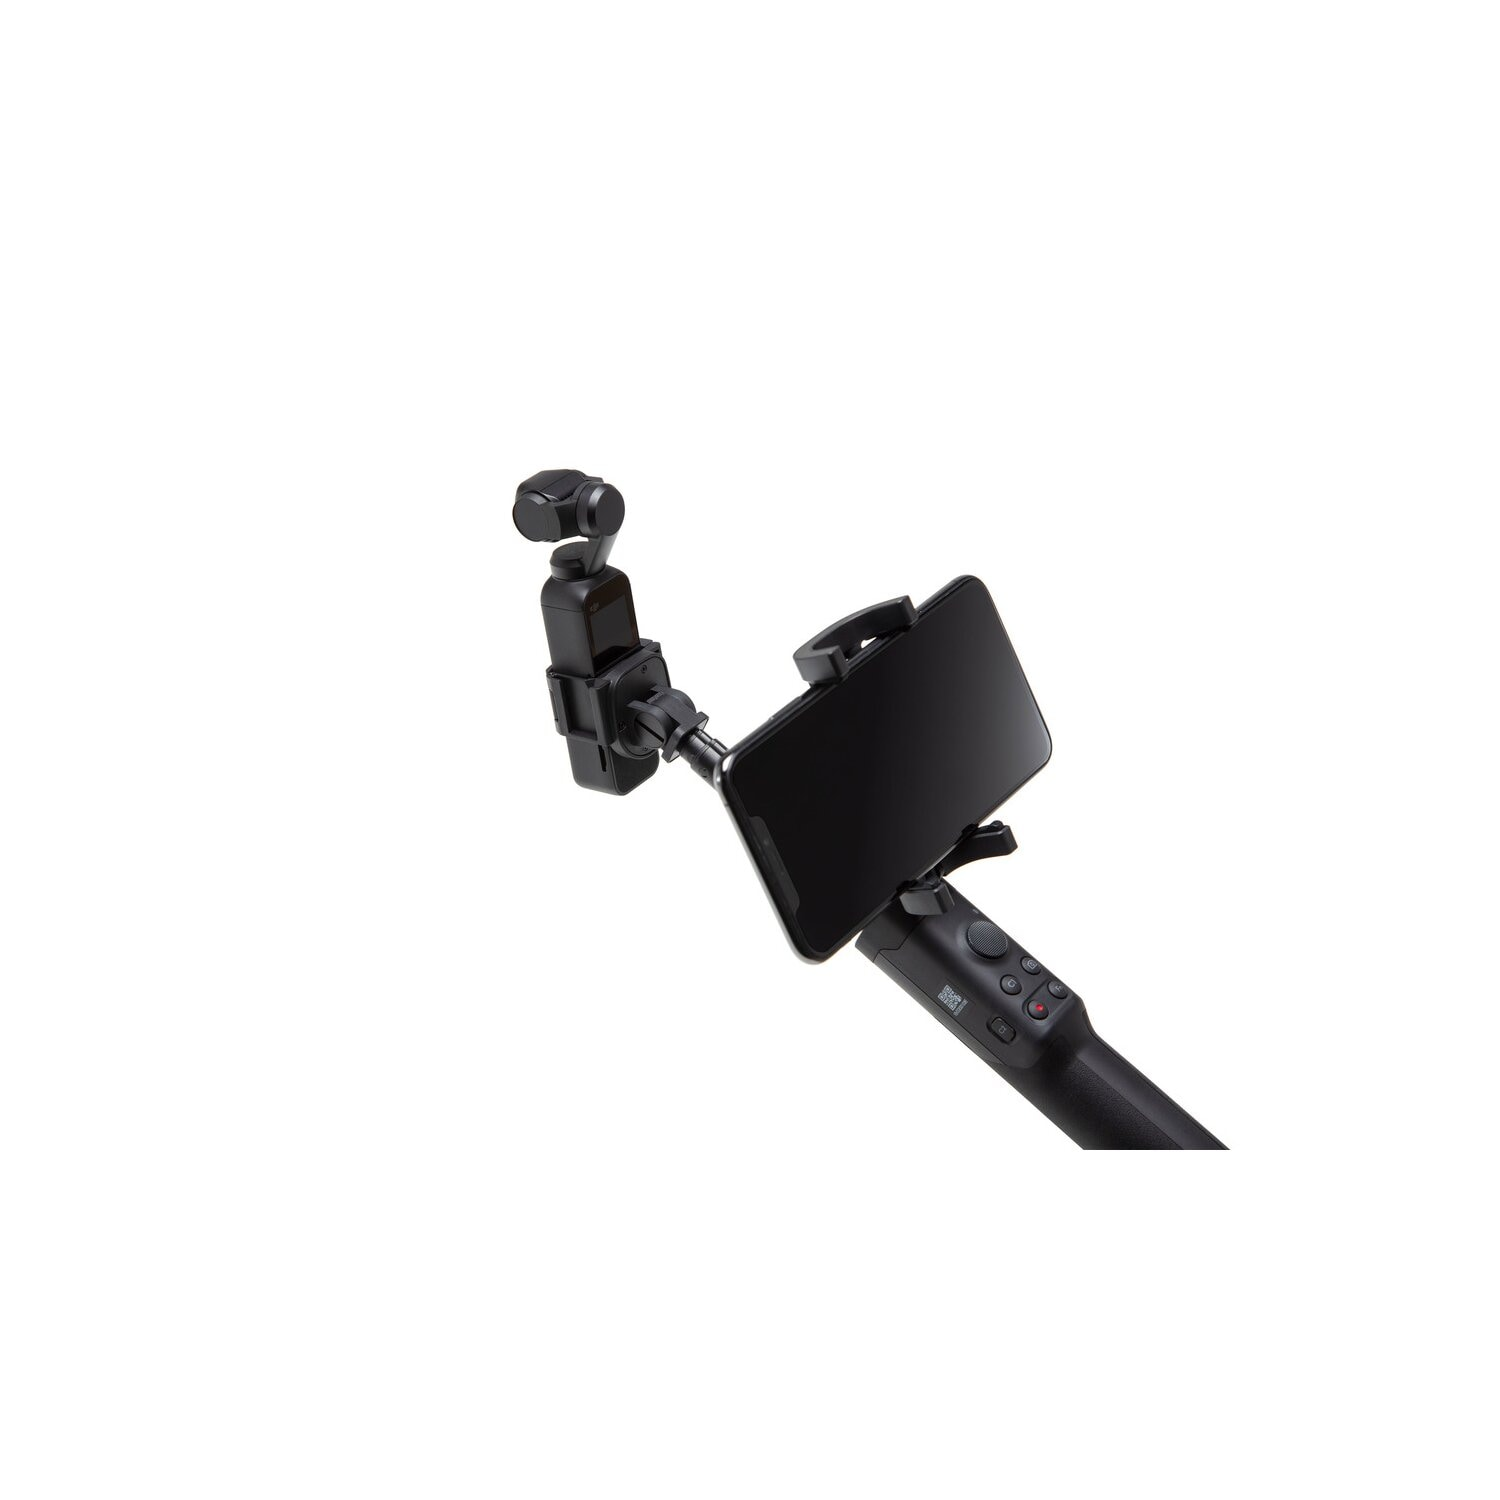 Wysięgnik teleskopowy DJI Osmo Pocket Extension Rod